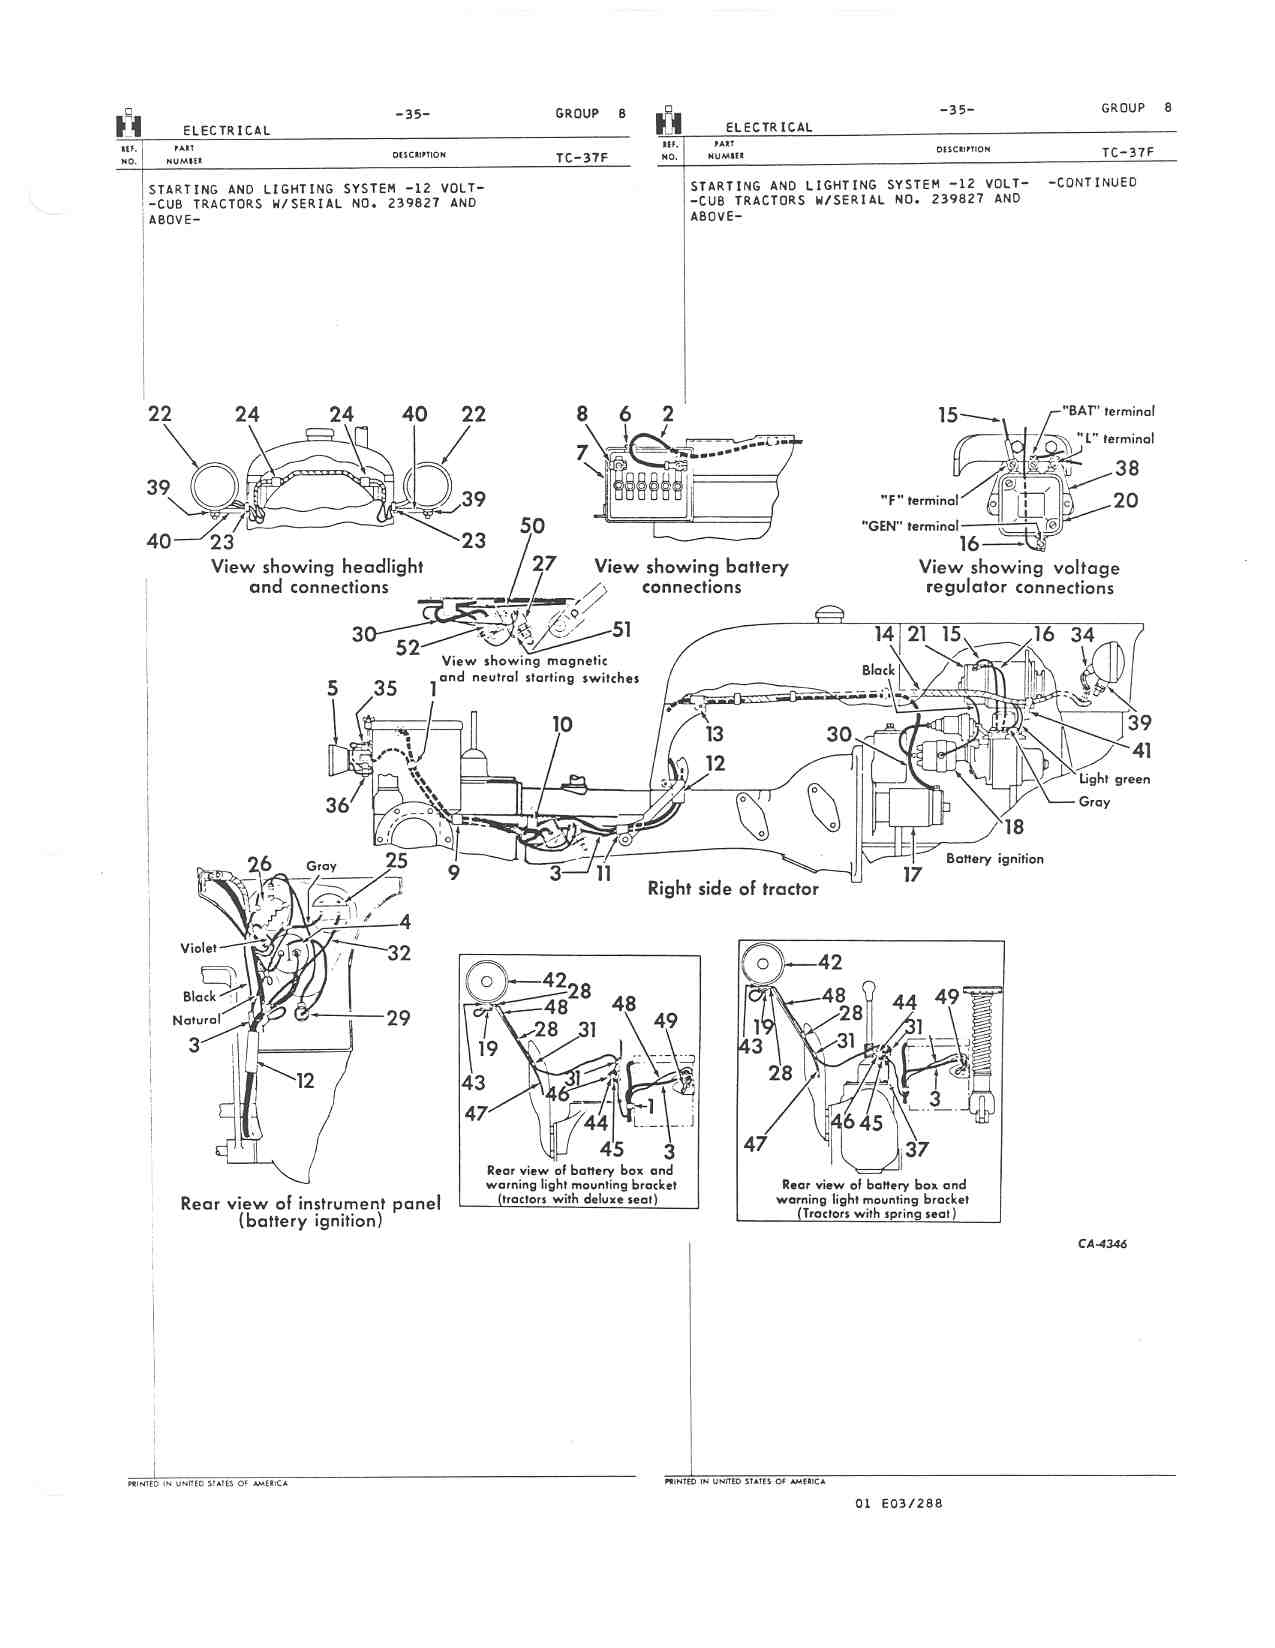 1951 farmall cub wiring diagram